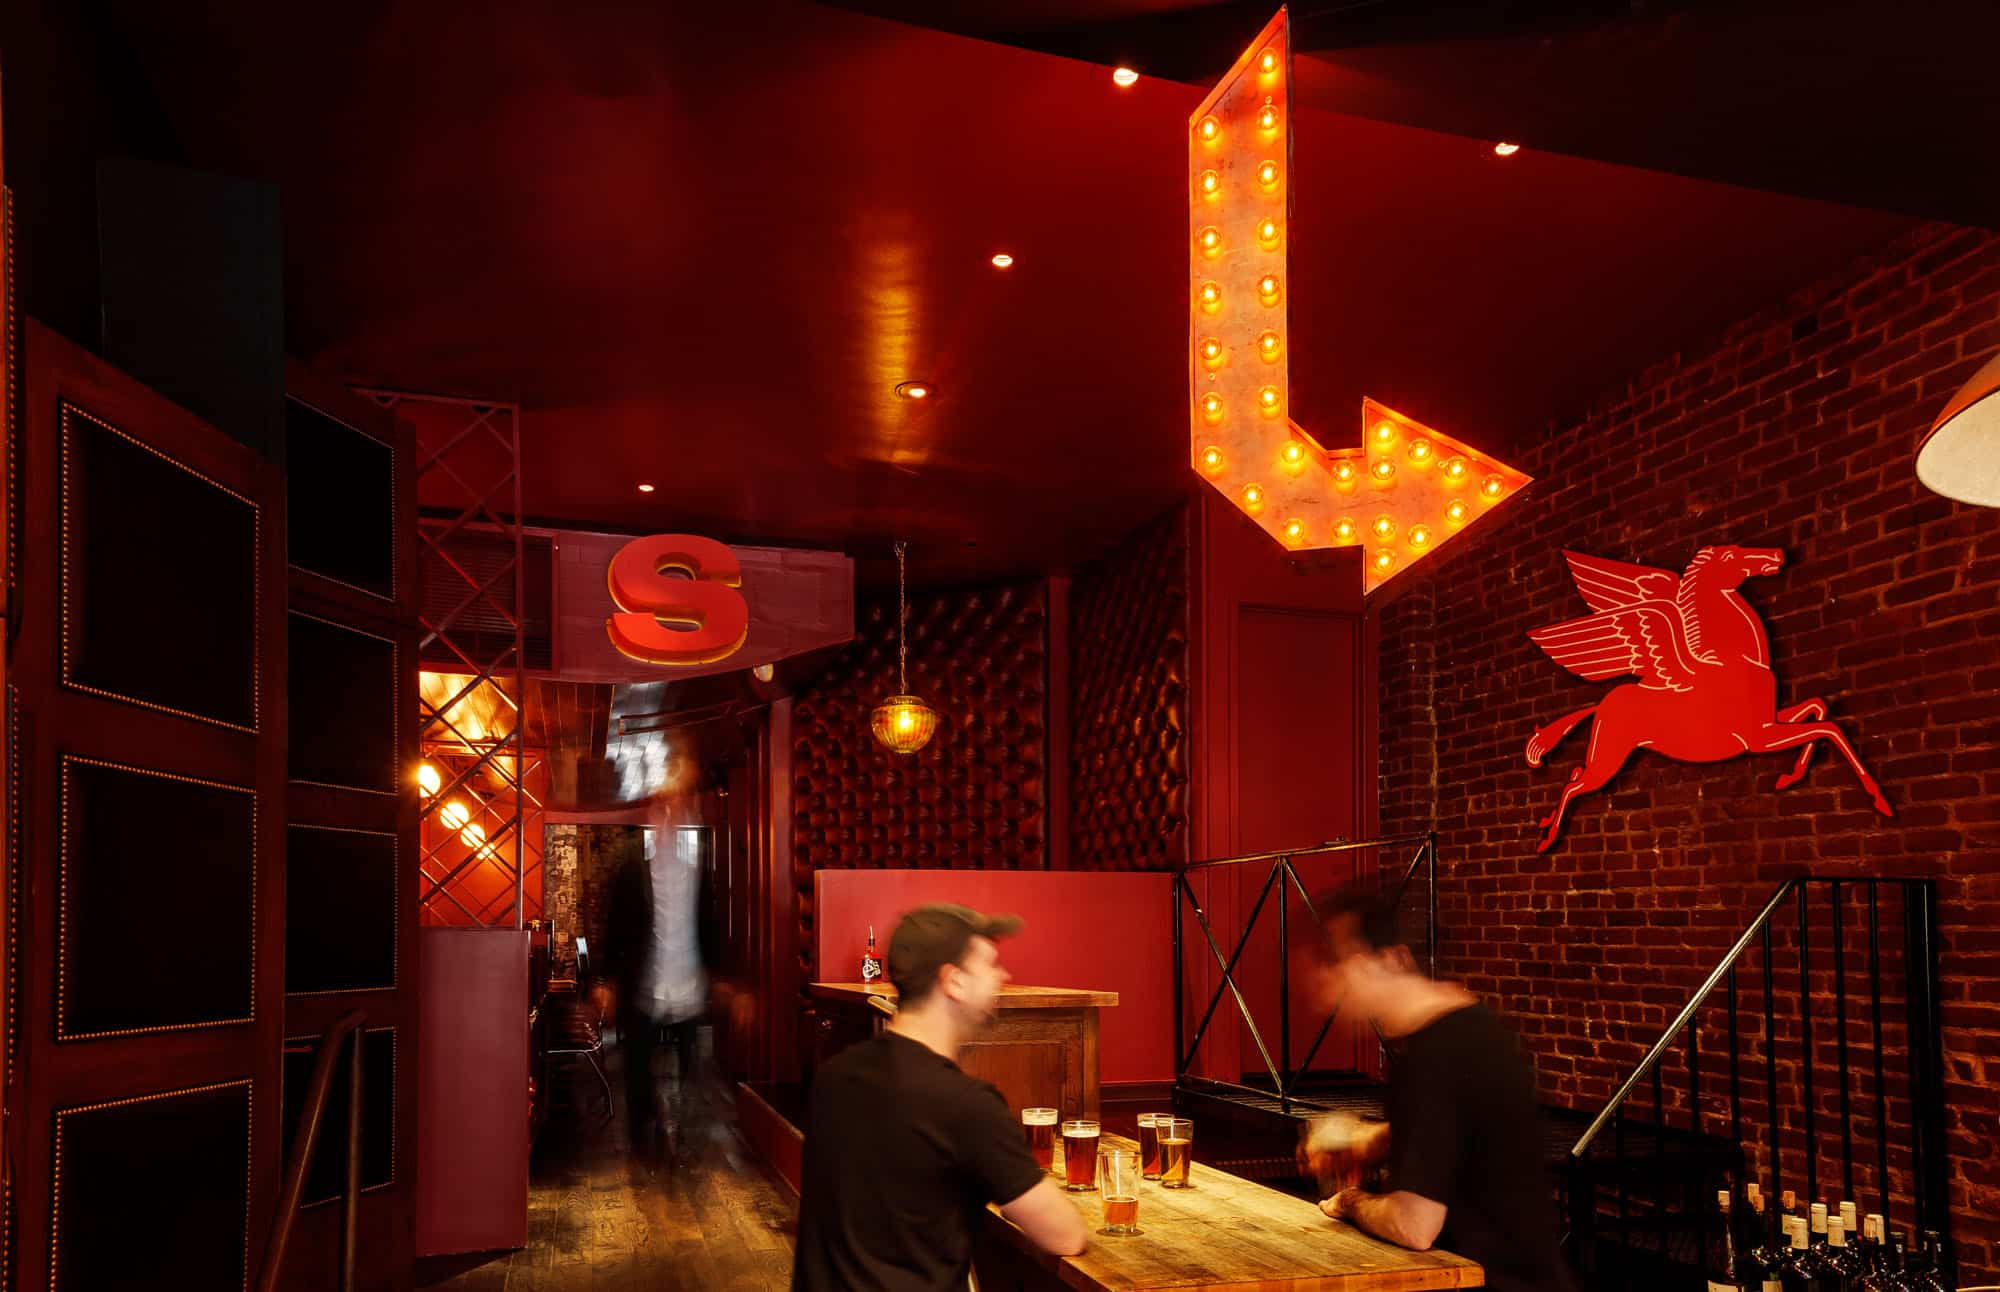 Interior photo of e's BAR with lighted sign